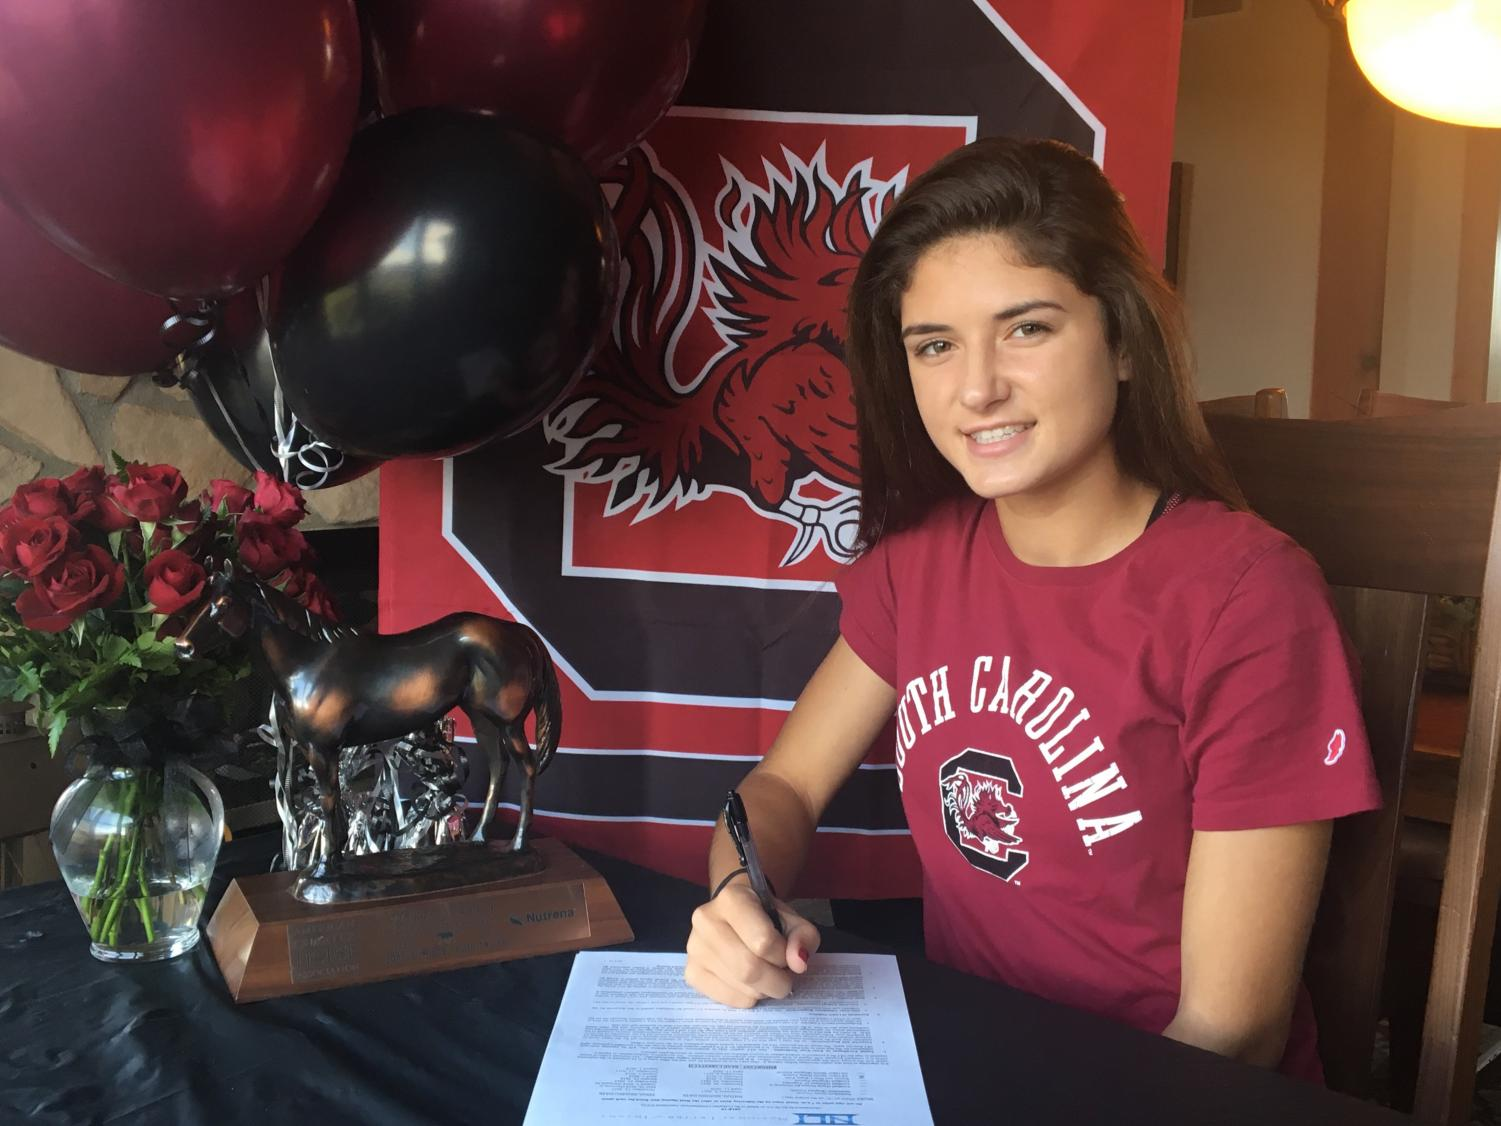 Thorpe signing the National Letter of Intent to join the University of South Carolina's equestrian team.